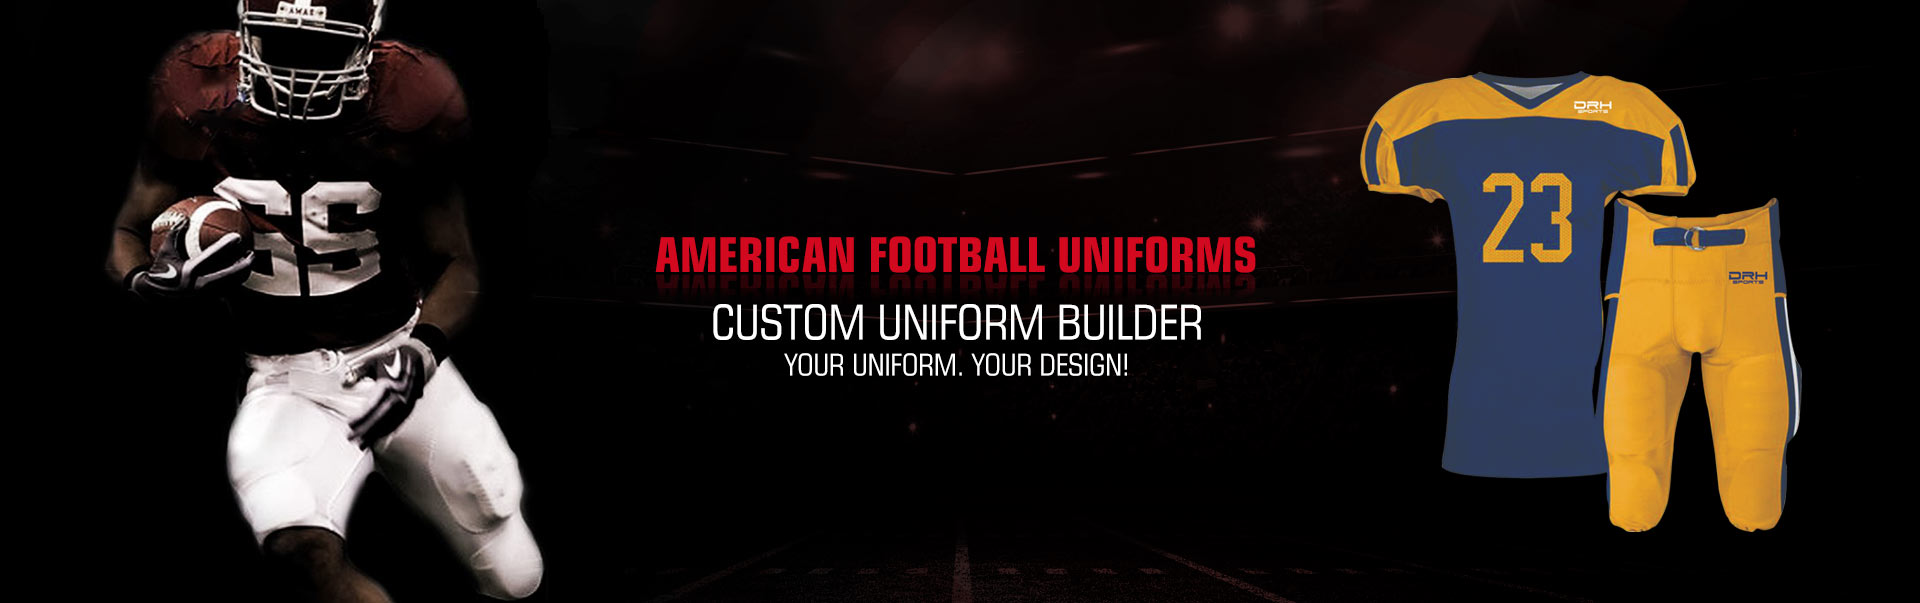 American Football Uniform Wholesaler, Suppliers in Ballarat